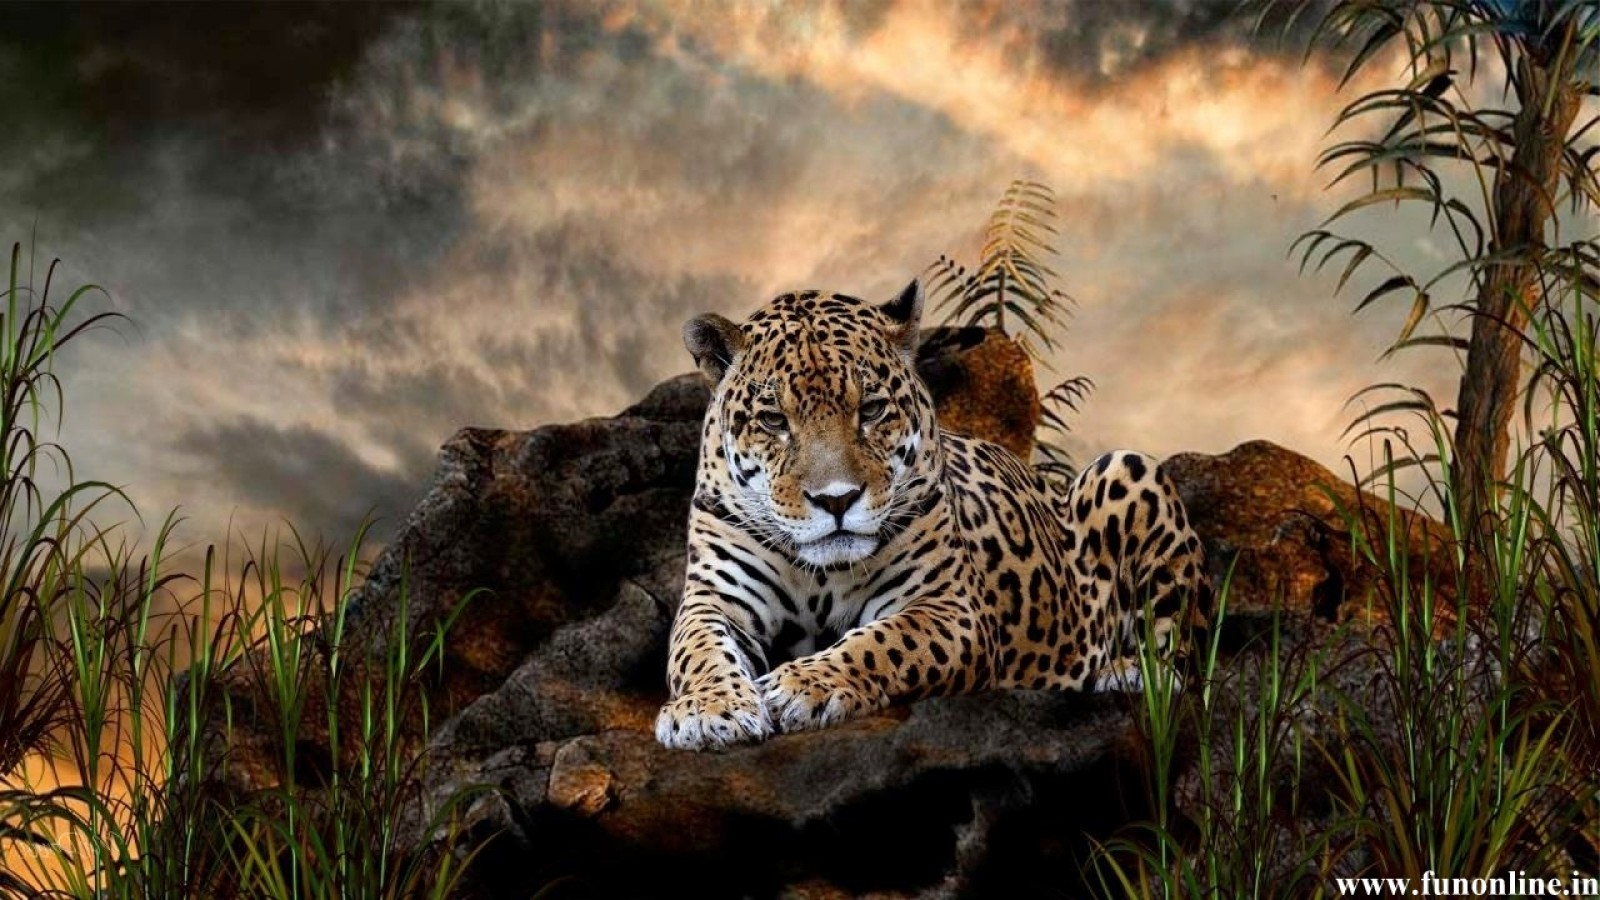 Hd wallpaper jaguar - Hd Wallpaper Jaguar Jaguar Wallpapers Stunning Jaguar Hd Wallpapers For Free Download